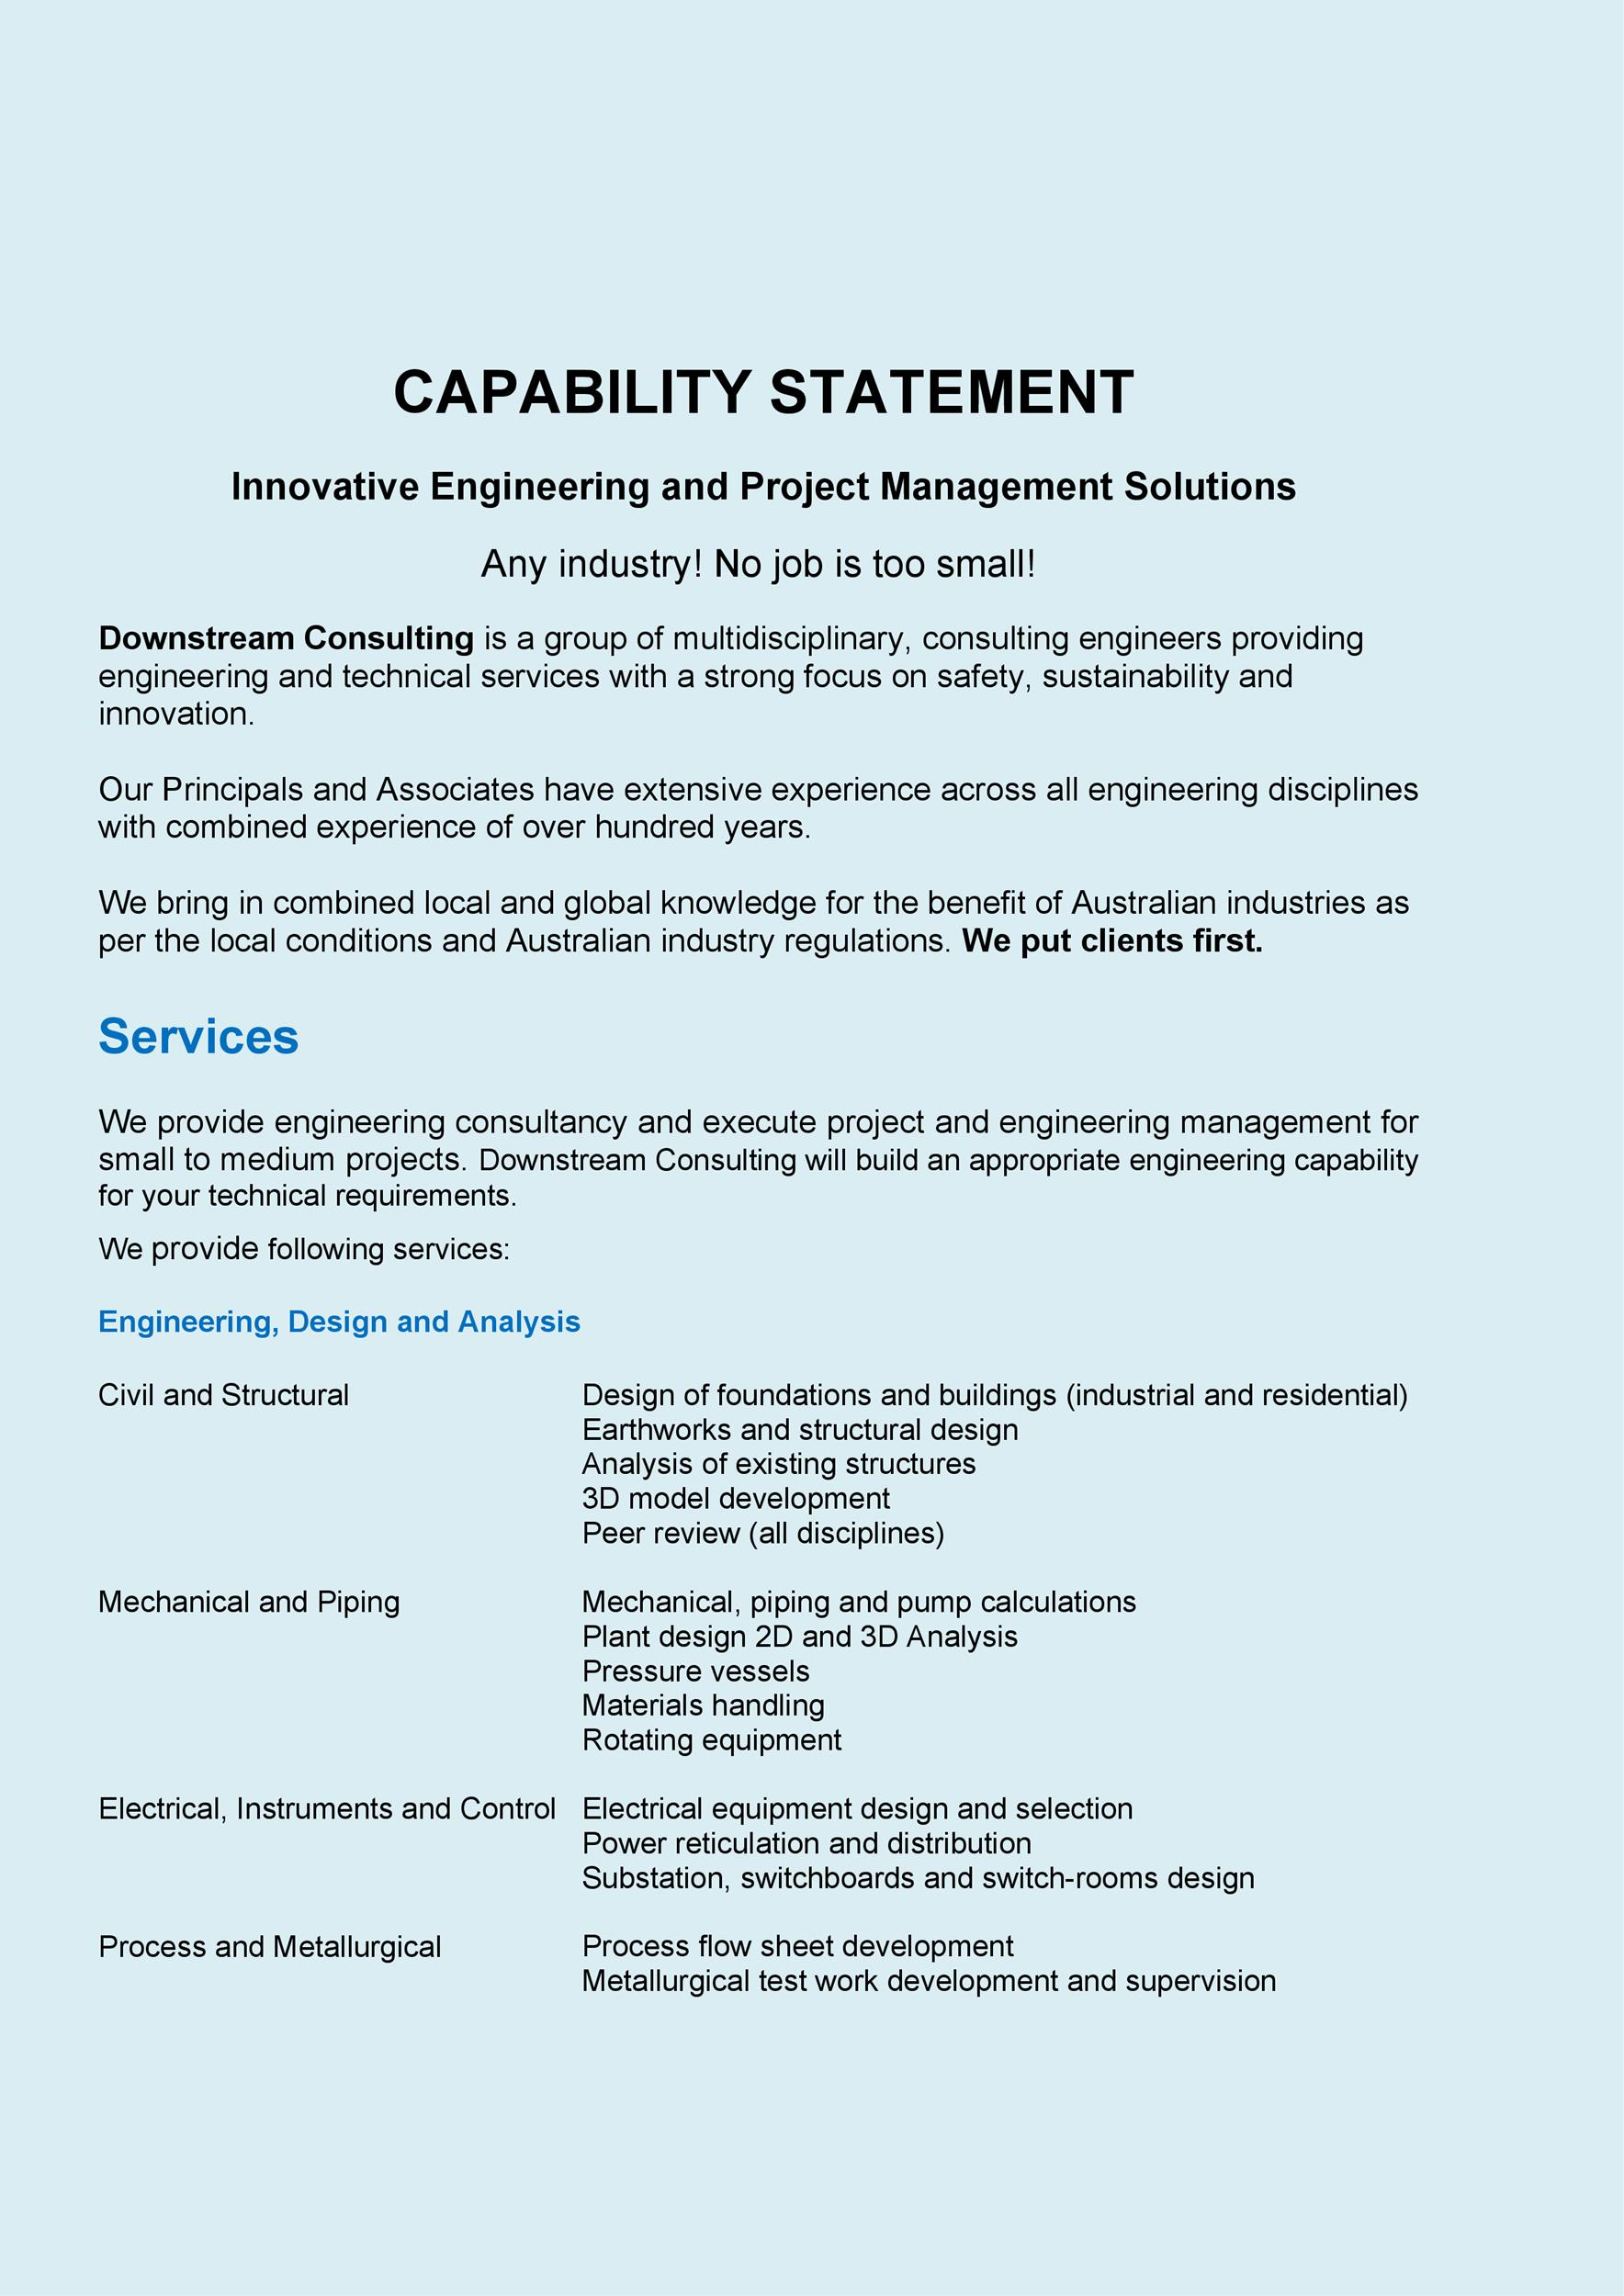 Free capability statement 20